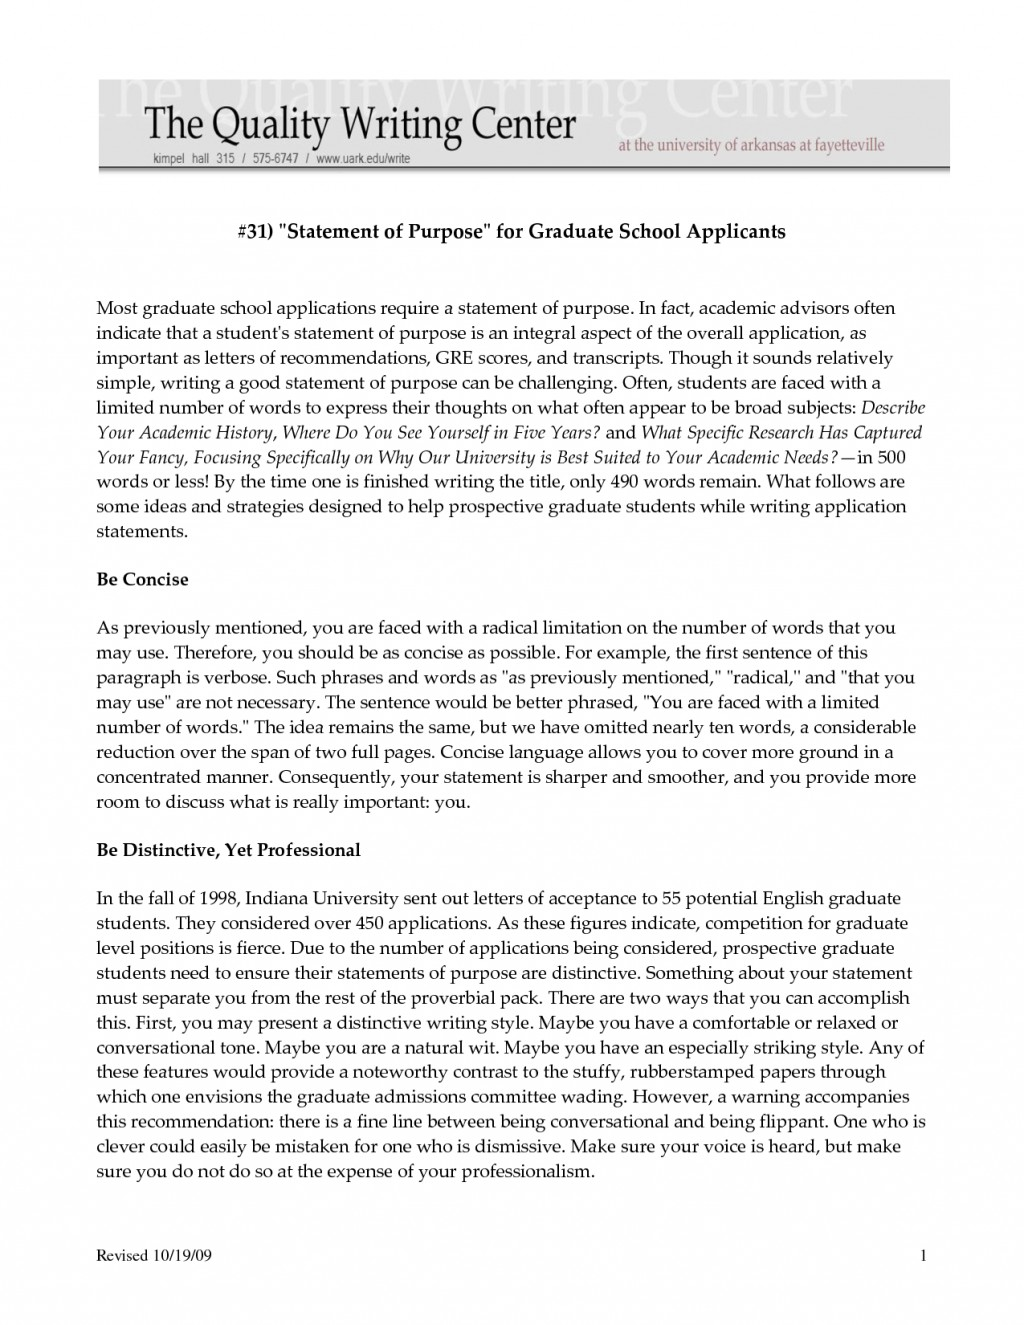 009 Personal Statement For Graduate School Sample Essays Essay Wonderful Nursing Pdf Large